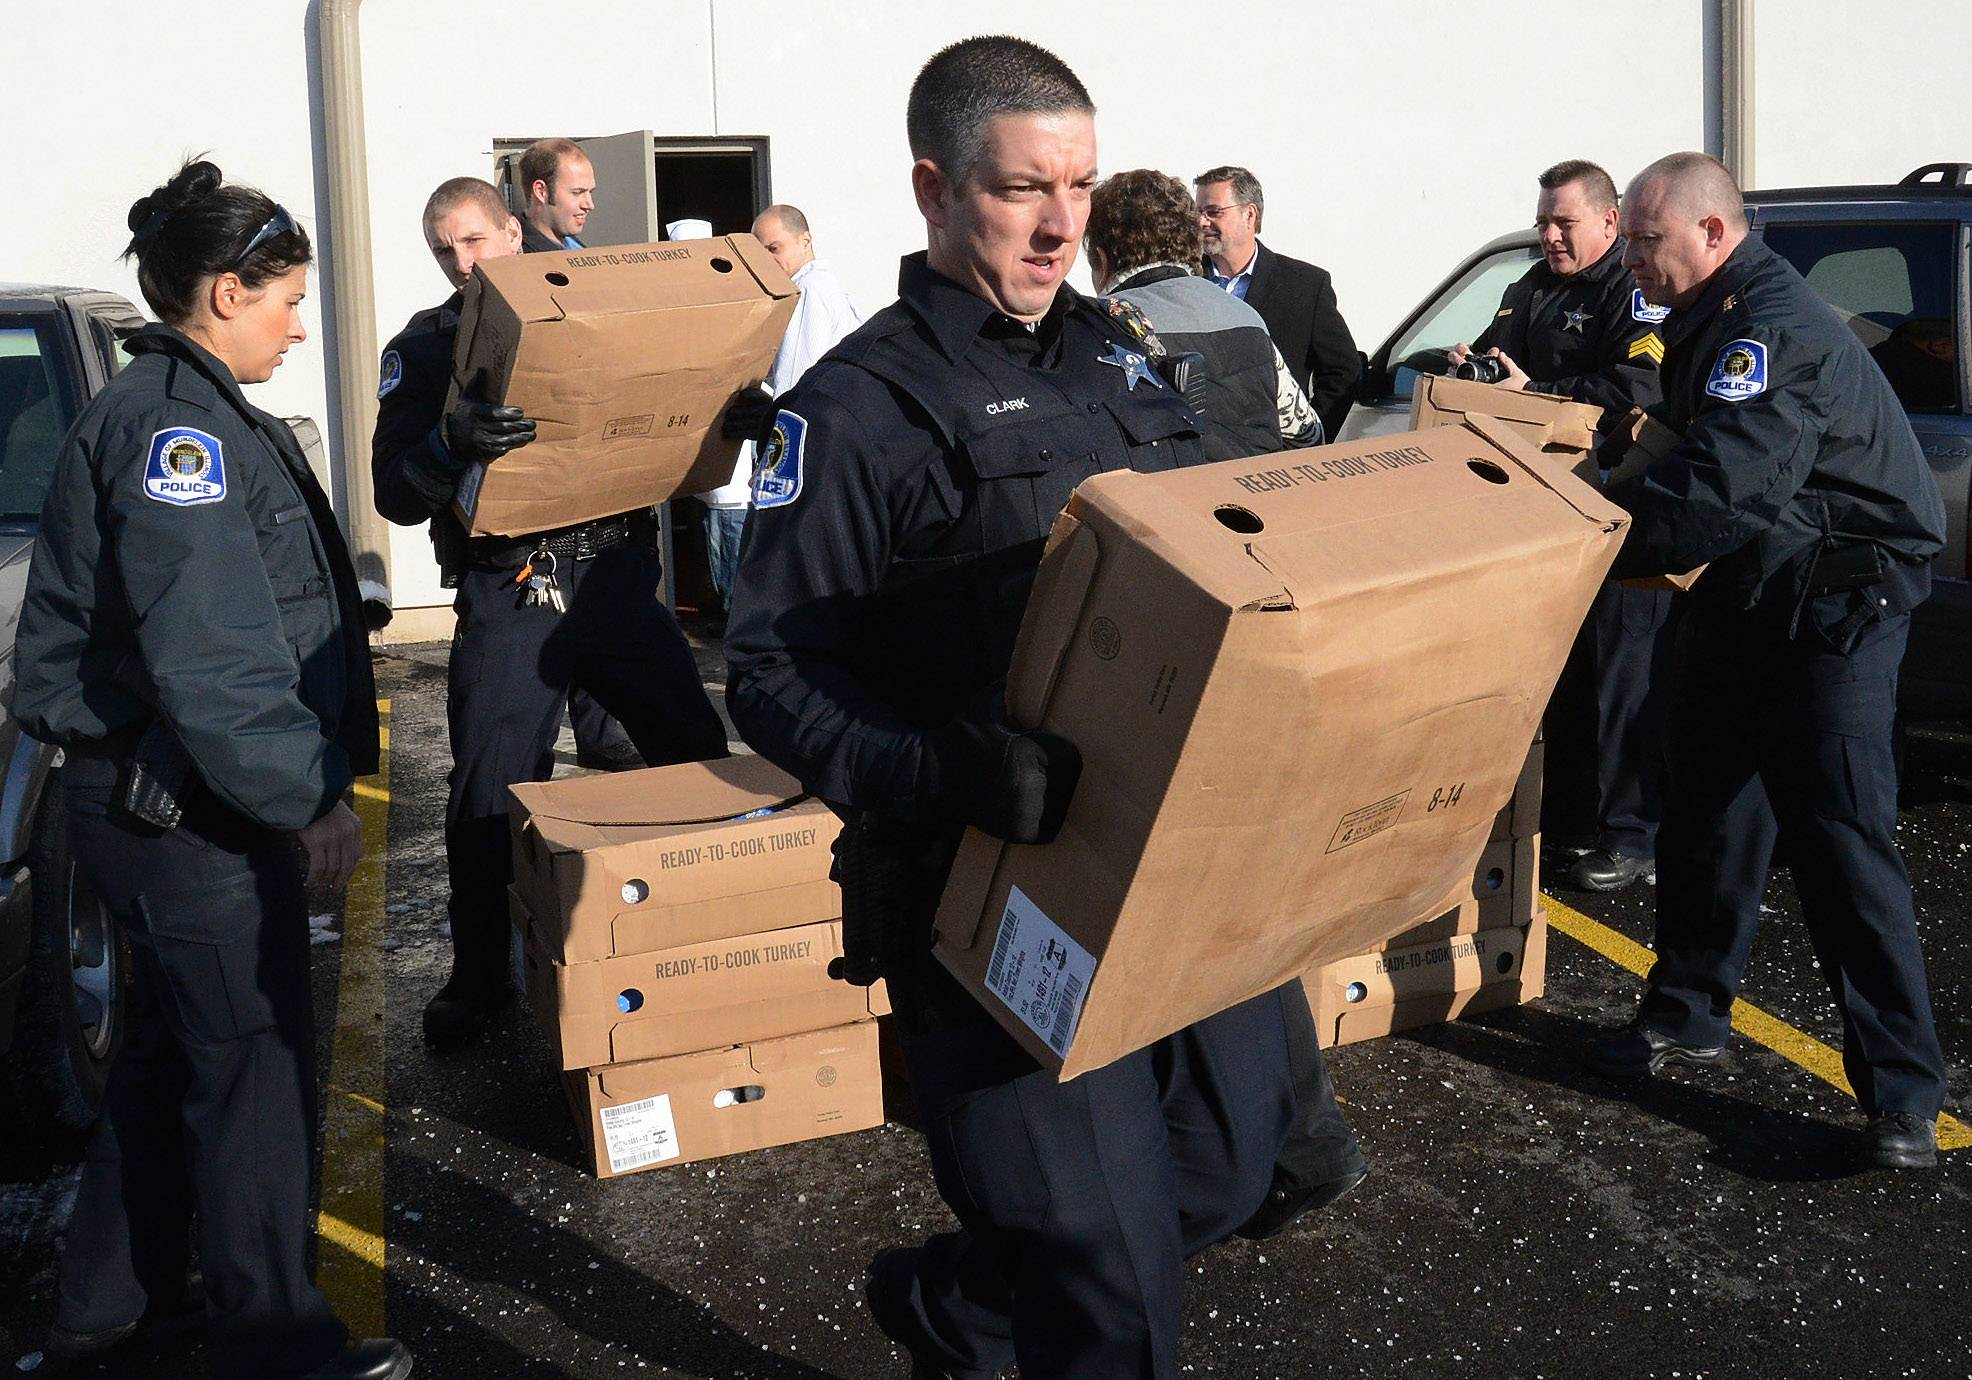 Officer Scott Clark hauls off a box of turkeys, as the Mundelein Police Department and Elly's Pancake House in Mundelein team up Tuesday to provide families in need with a complete Thanksgiving meal. In all, 75 turkeys were delivered.